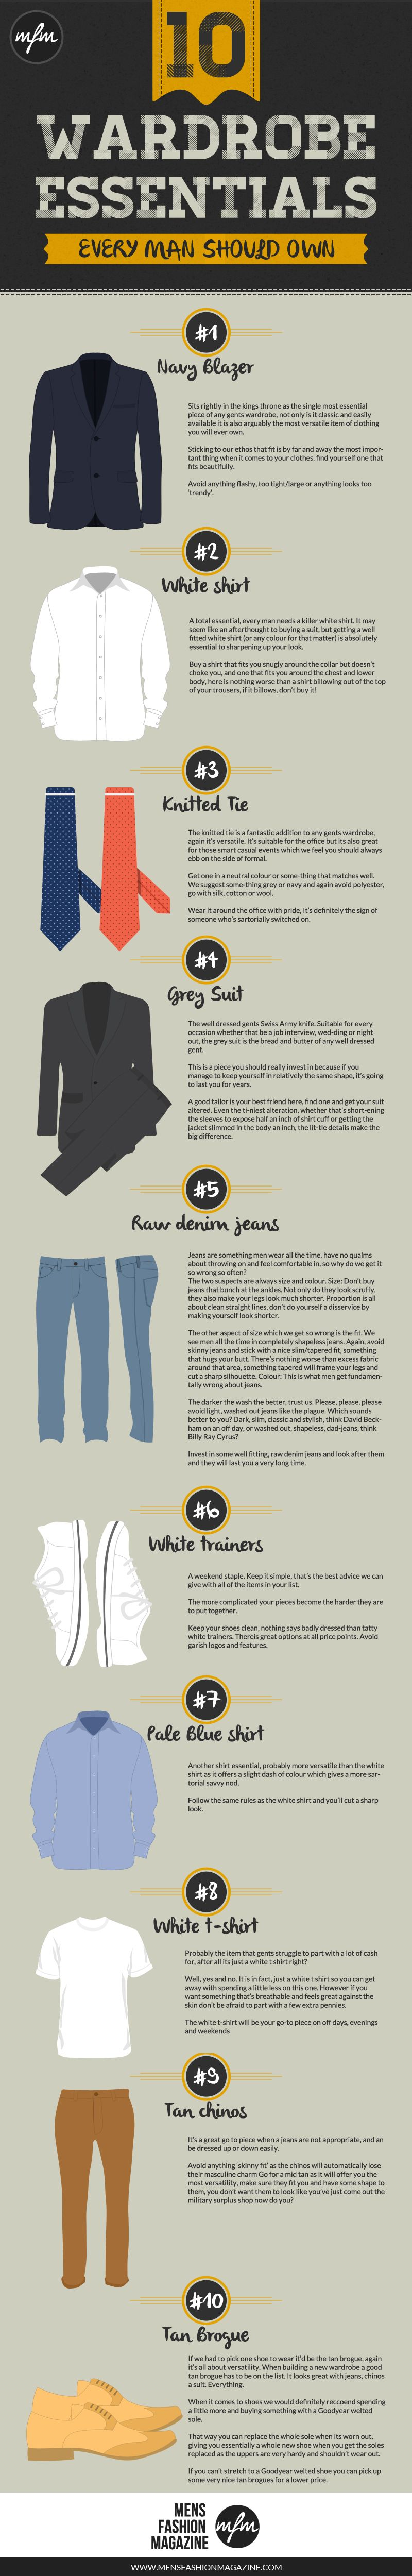 10 Wardrobe Essentials Every Man Should Own. Sometimes, dressing better is simpler than you think.